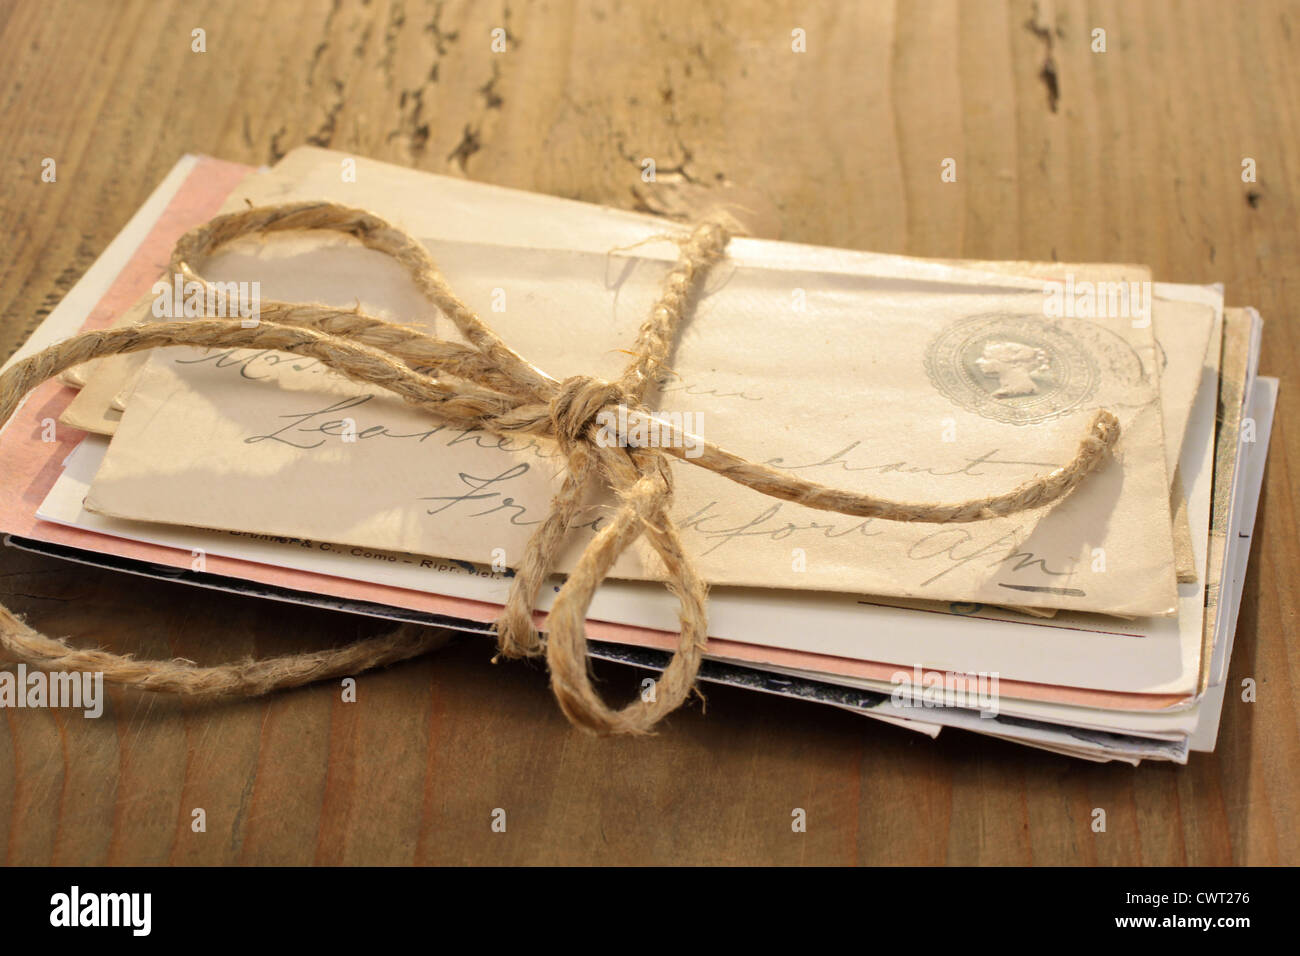 Bundle of letters tied with a cord on the old wooden table - Stock Image